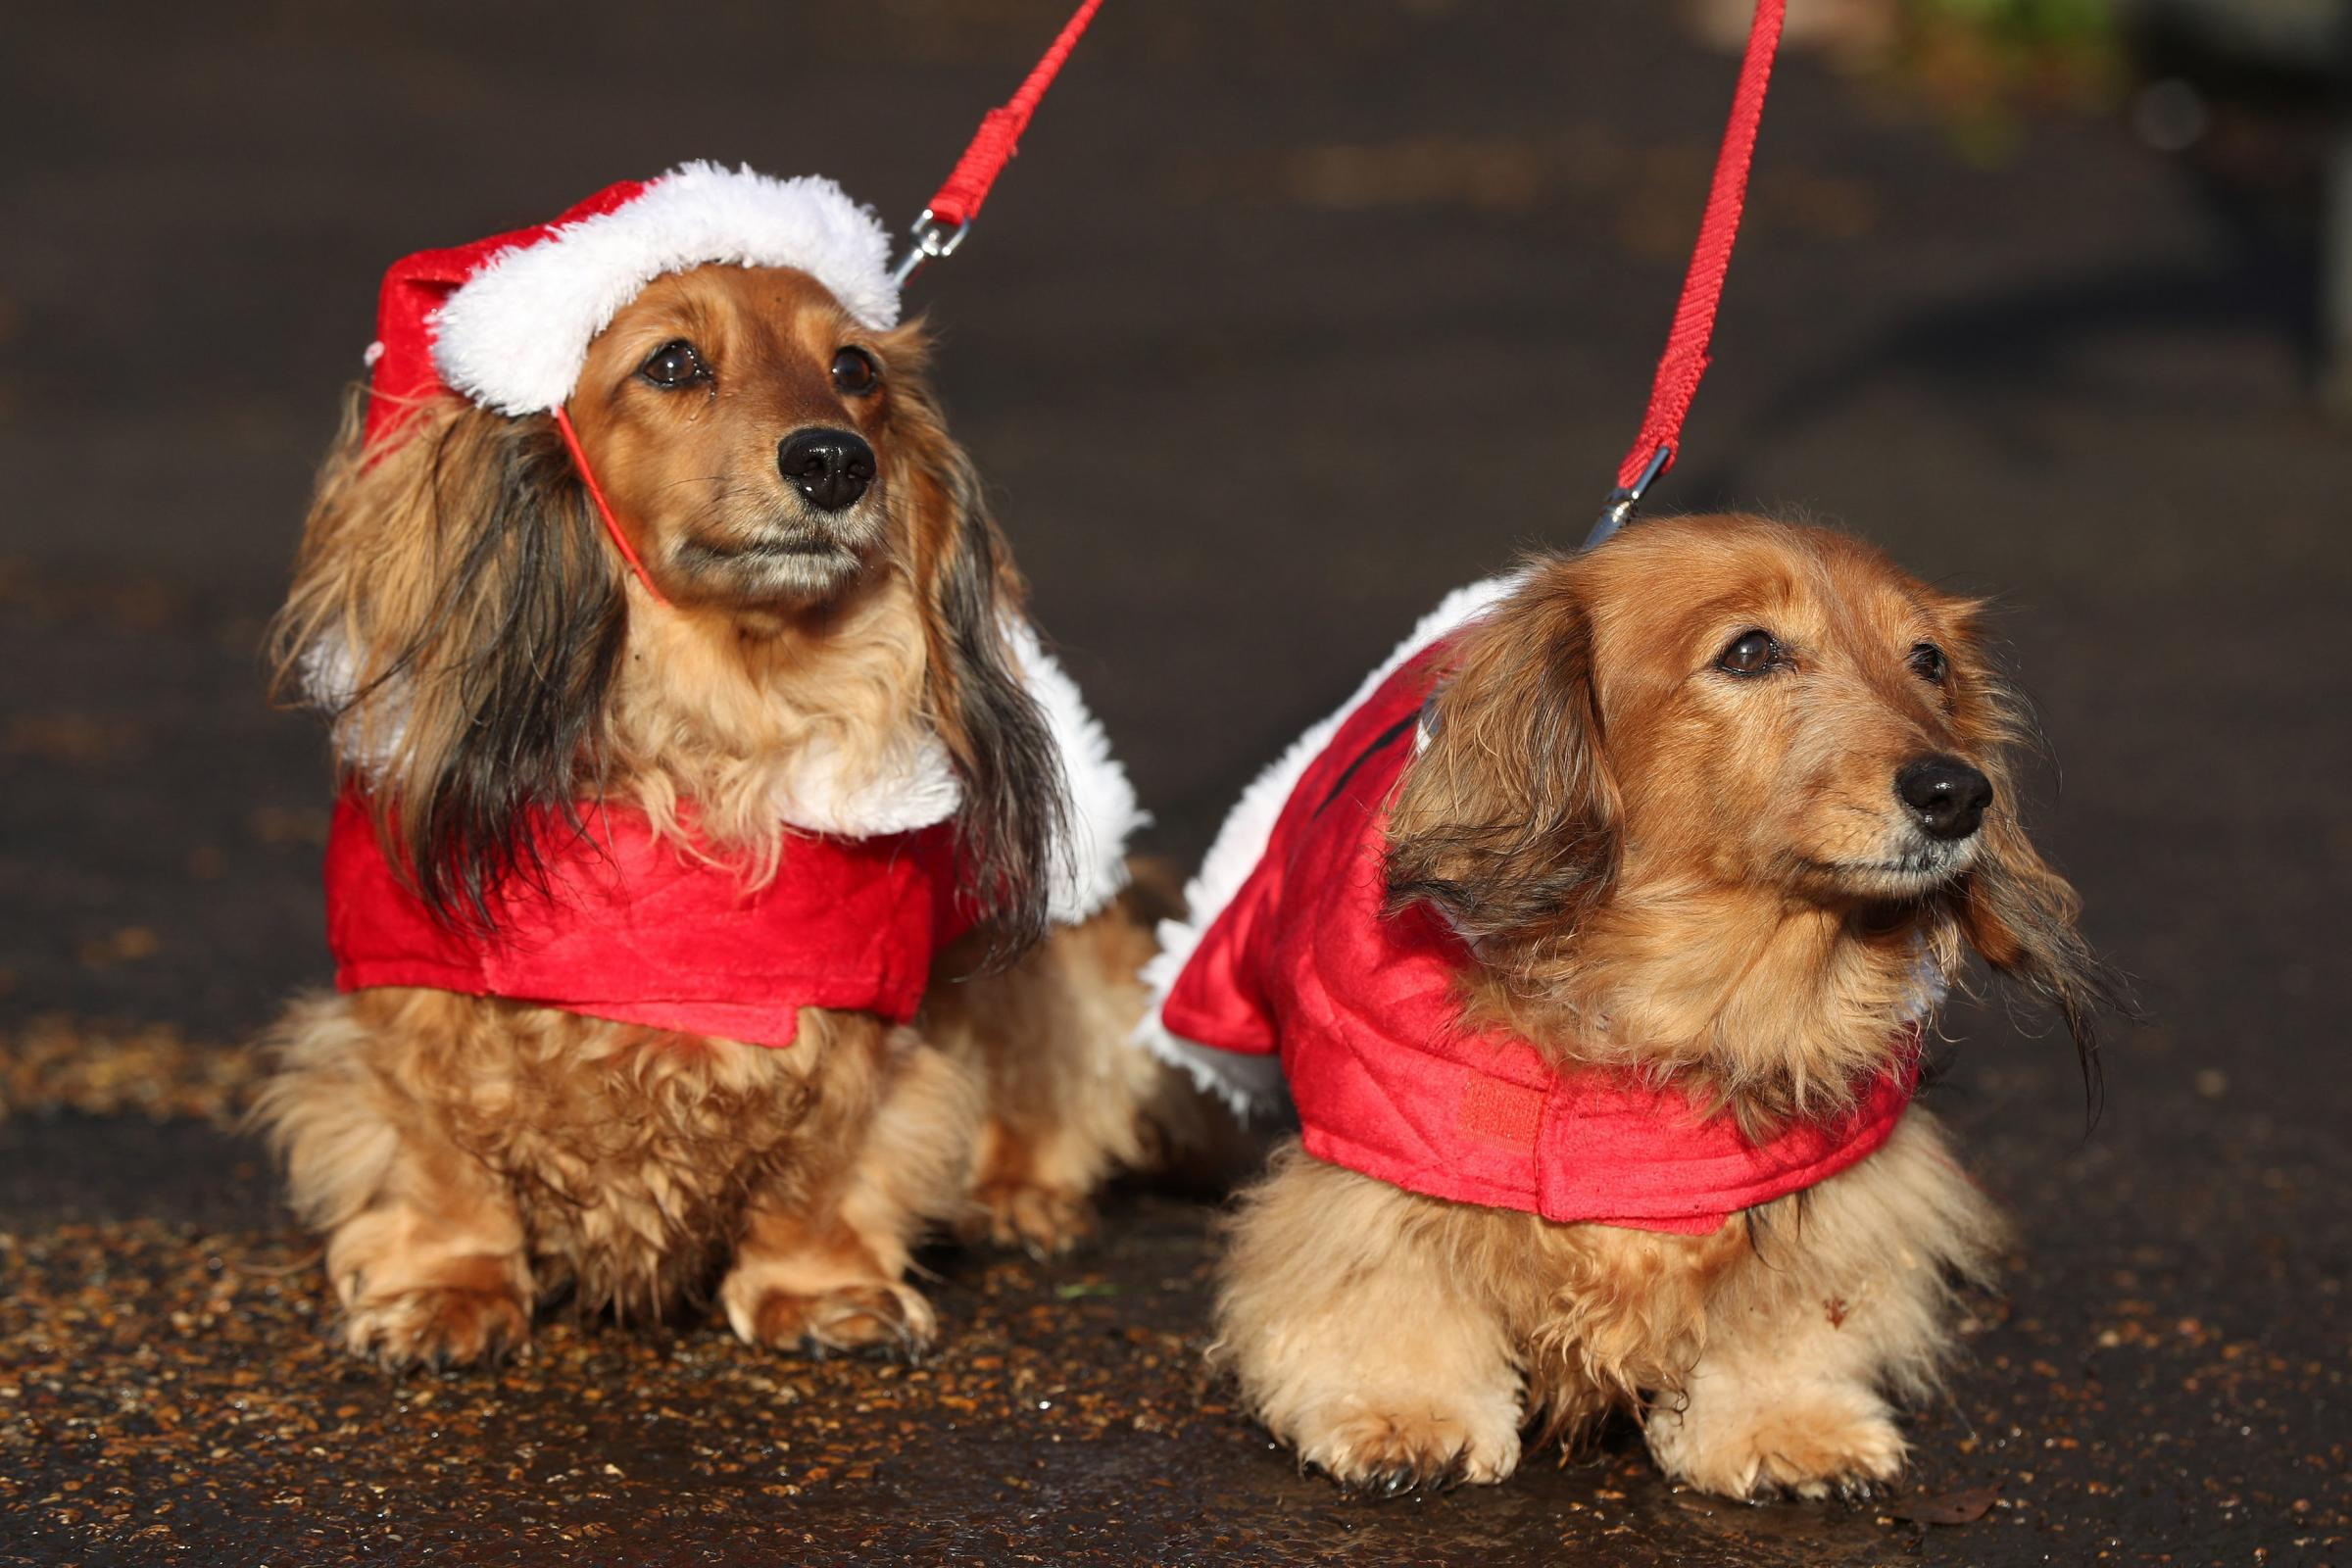 Dachshunds Sabrina, left, and Lola, right, take part in the festive walk